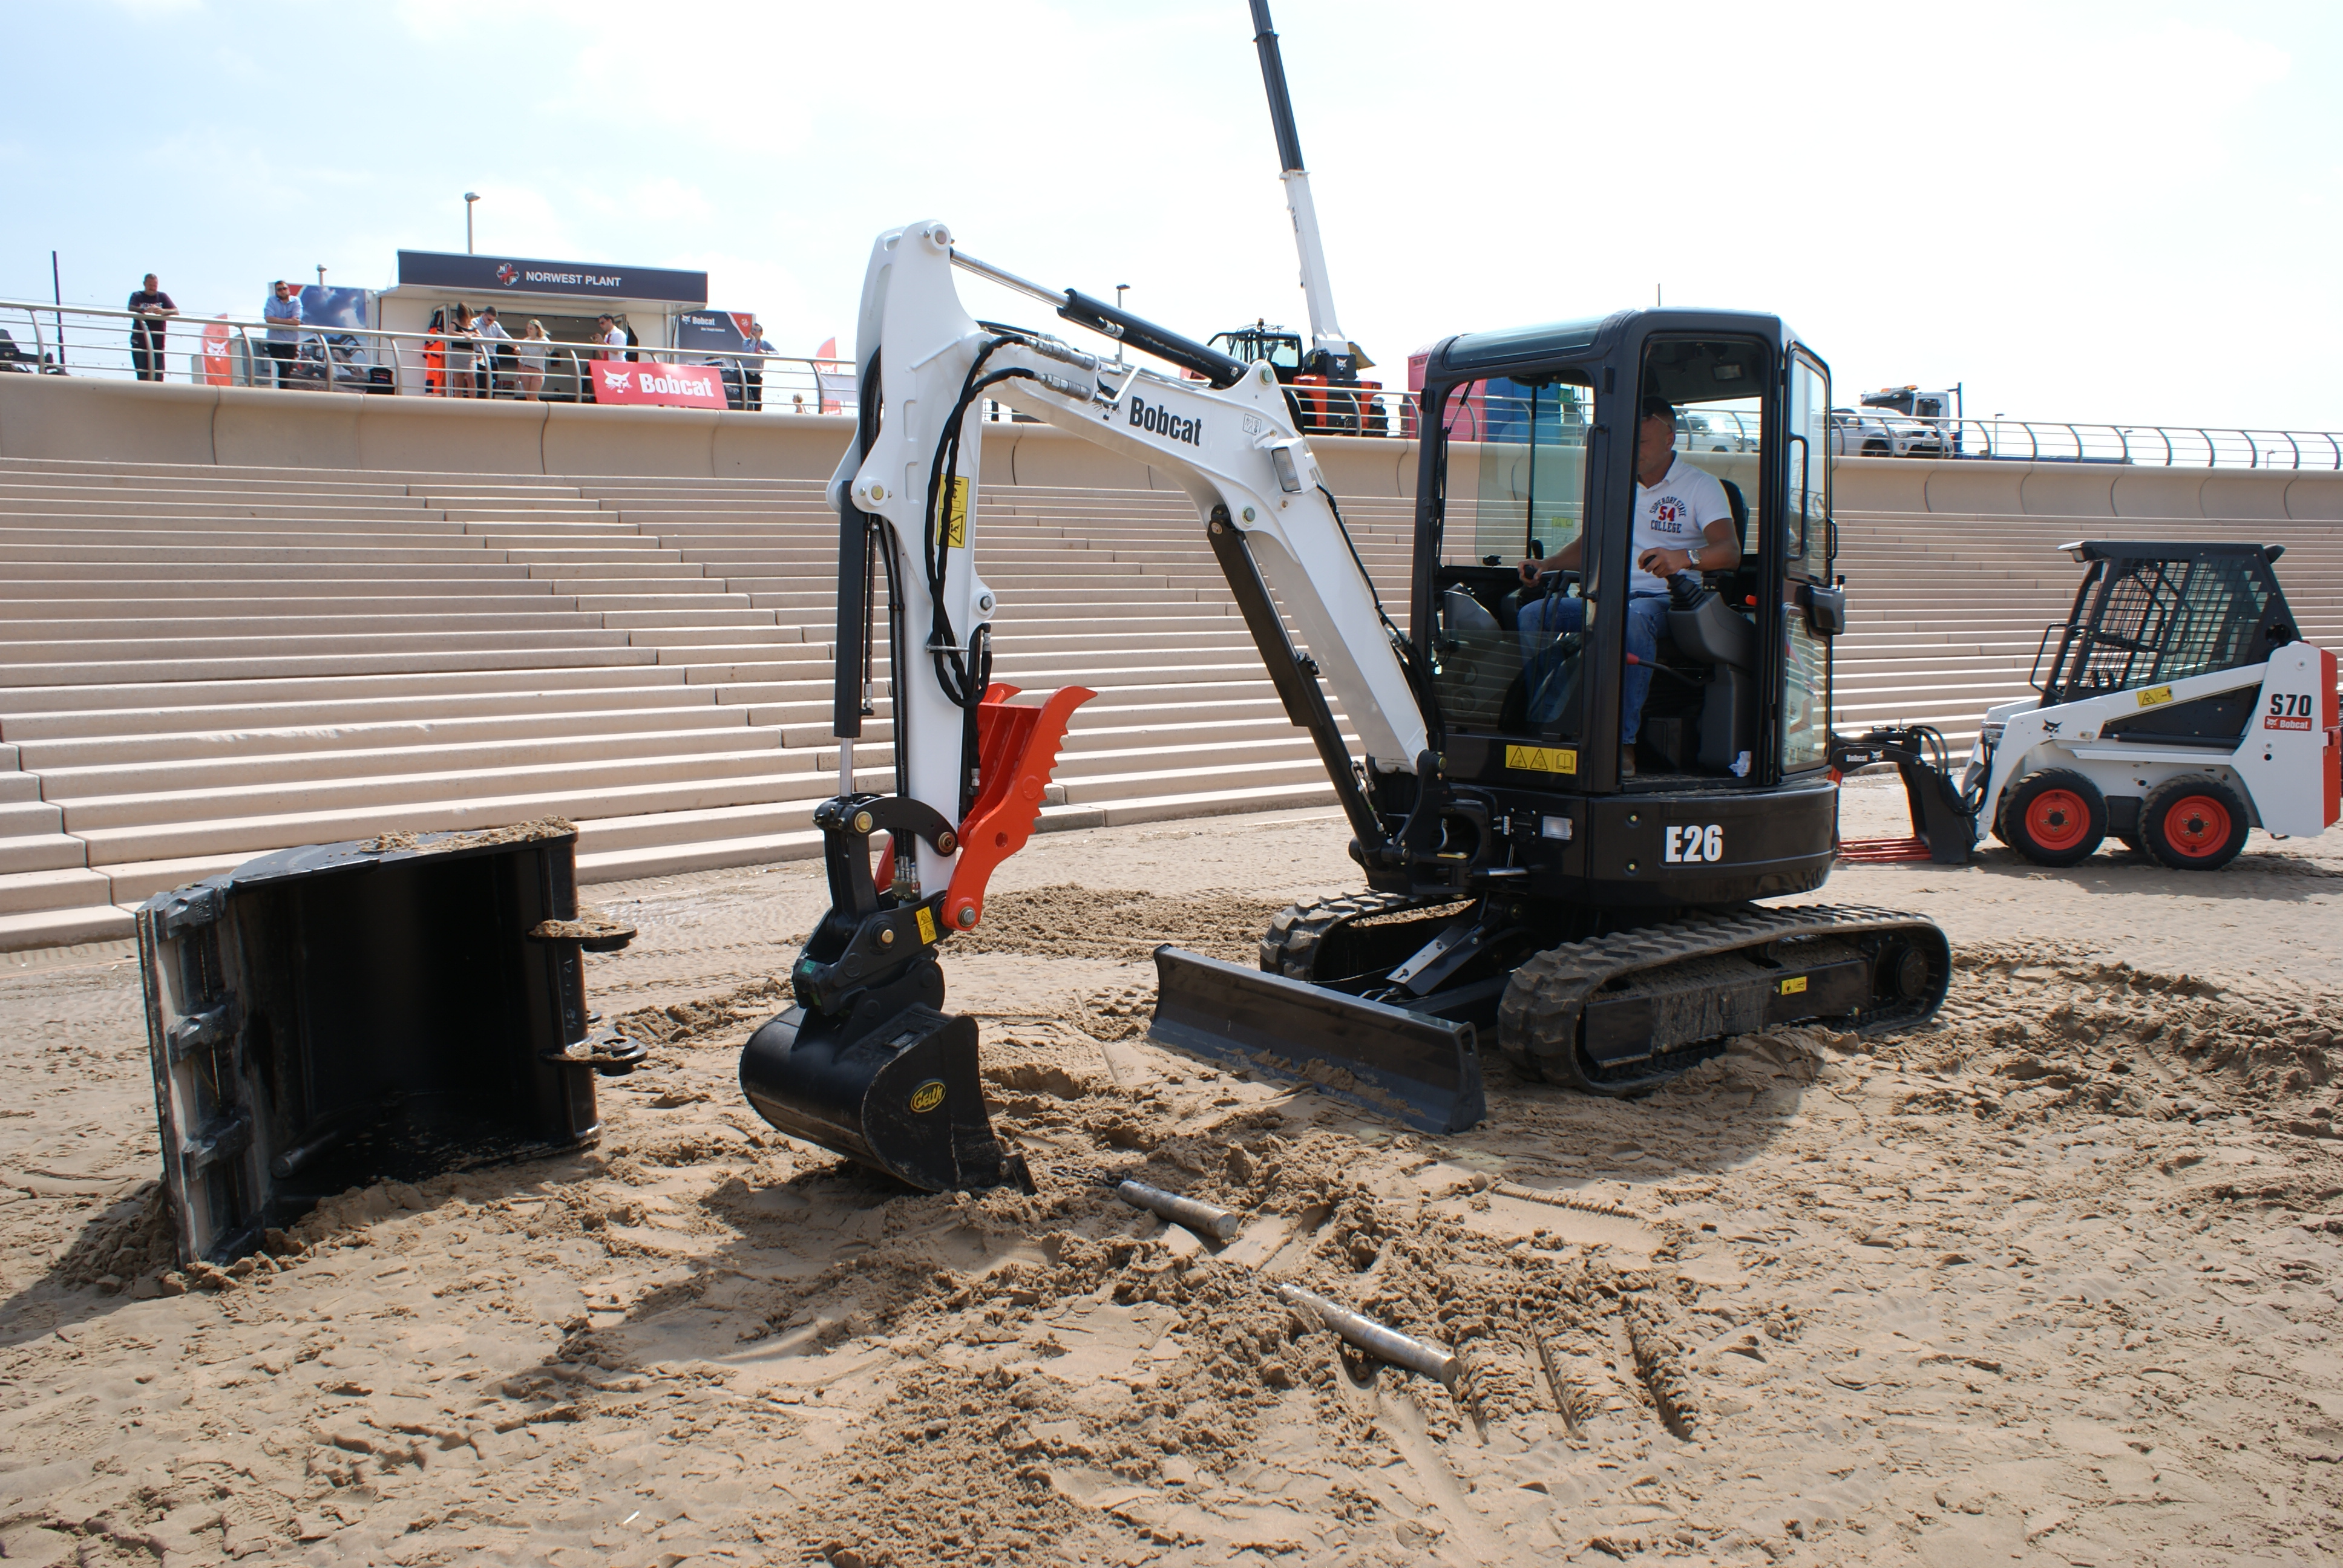 Bobcat attachments enjoy a day at the beach | Project Plant